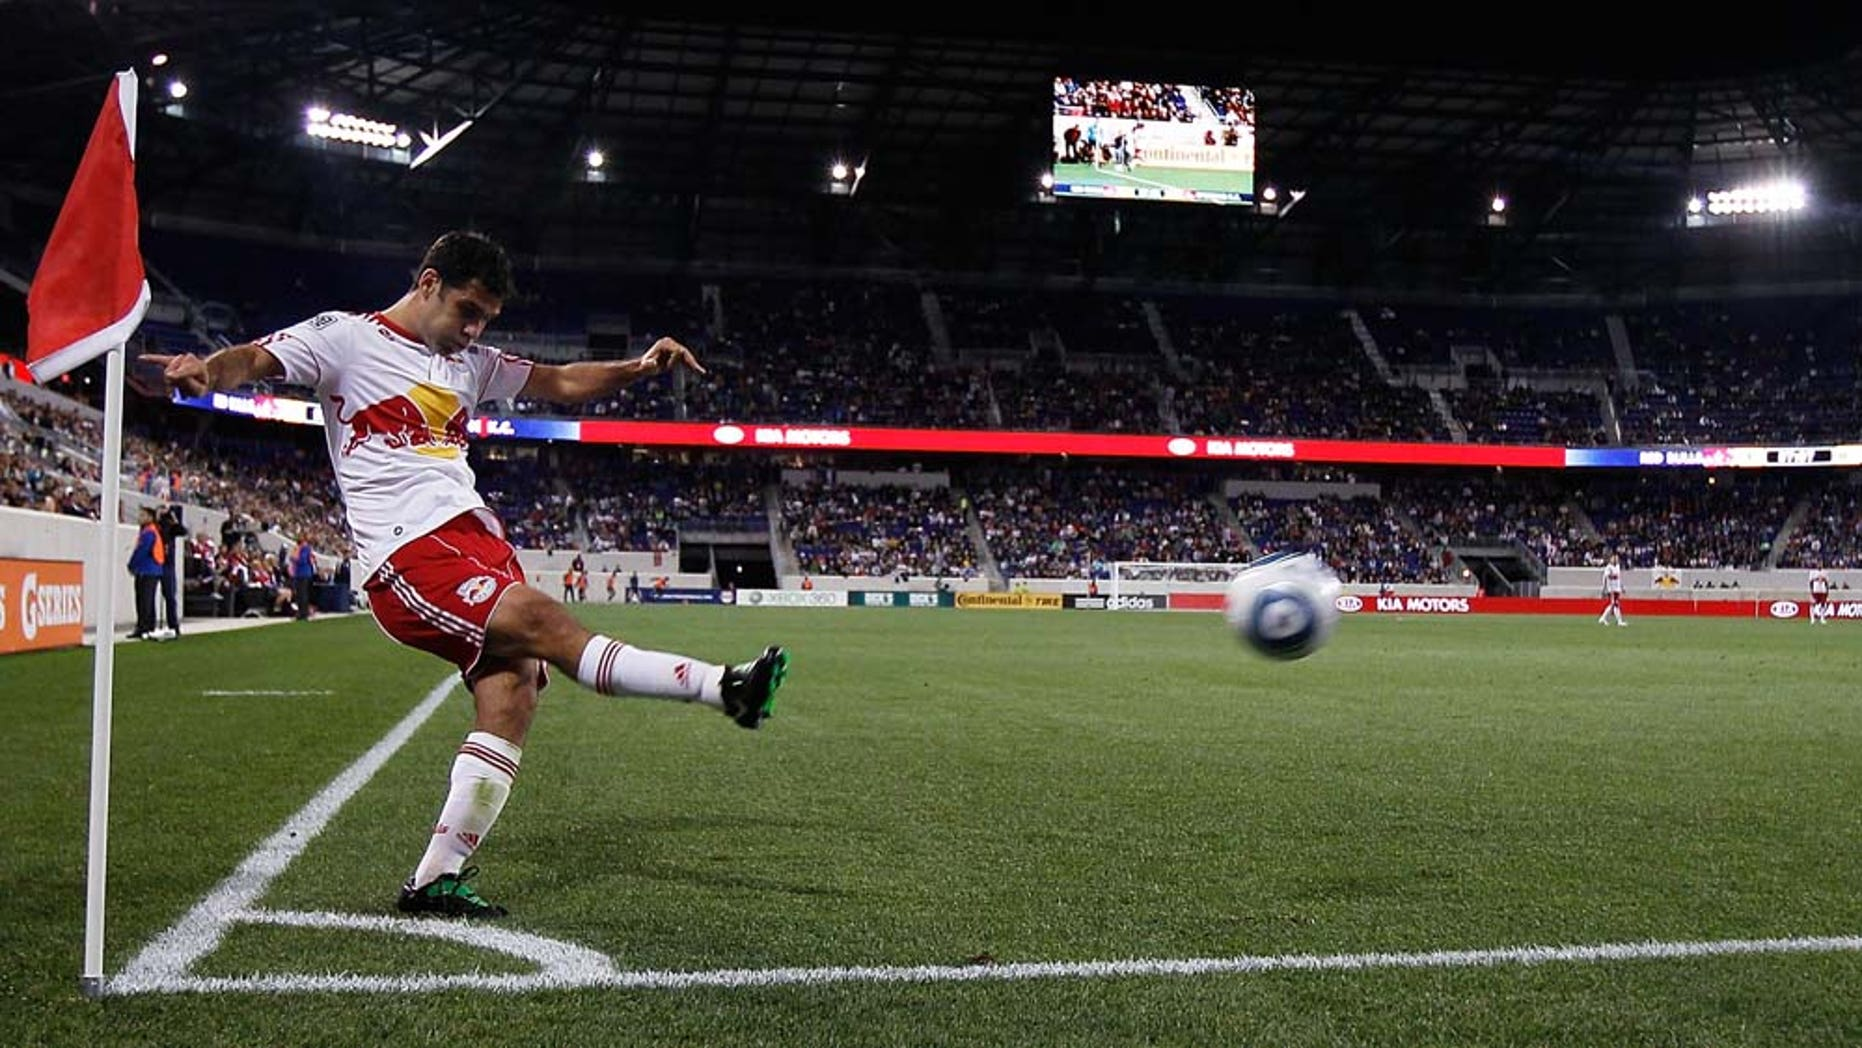 HARRISON, NJ - APRIL 30:  Rafa Marquez #4 of the New York Red Bulls takes a corner kick against the Sporting KC on April 30, 2011 at Red Bull Arena in Harrison, New Jersey. The Red Bulls defeated the Sporting KC 1-0. (Photo by Mike Stobe/Getty Images for New York Red Bull)